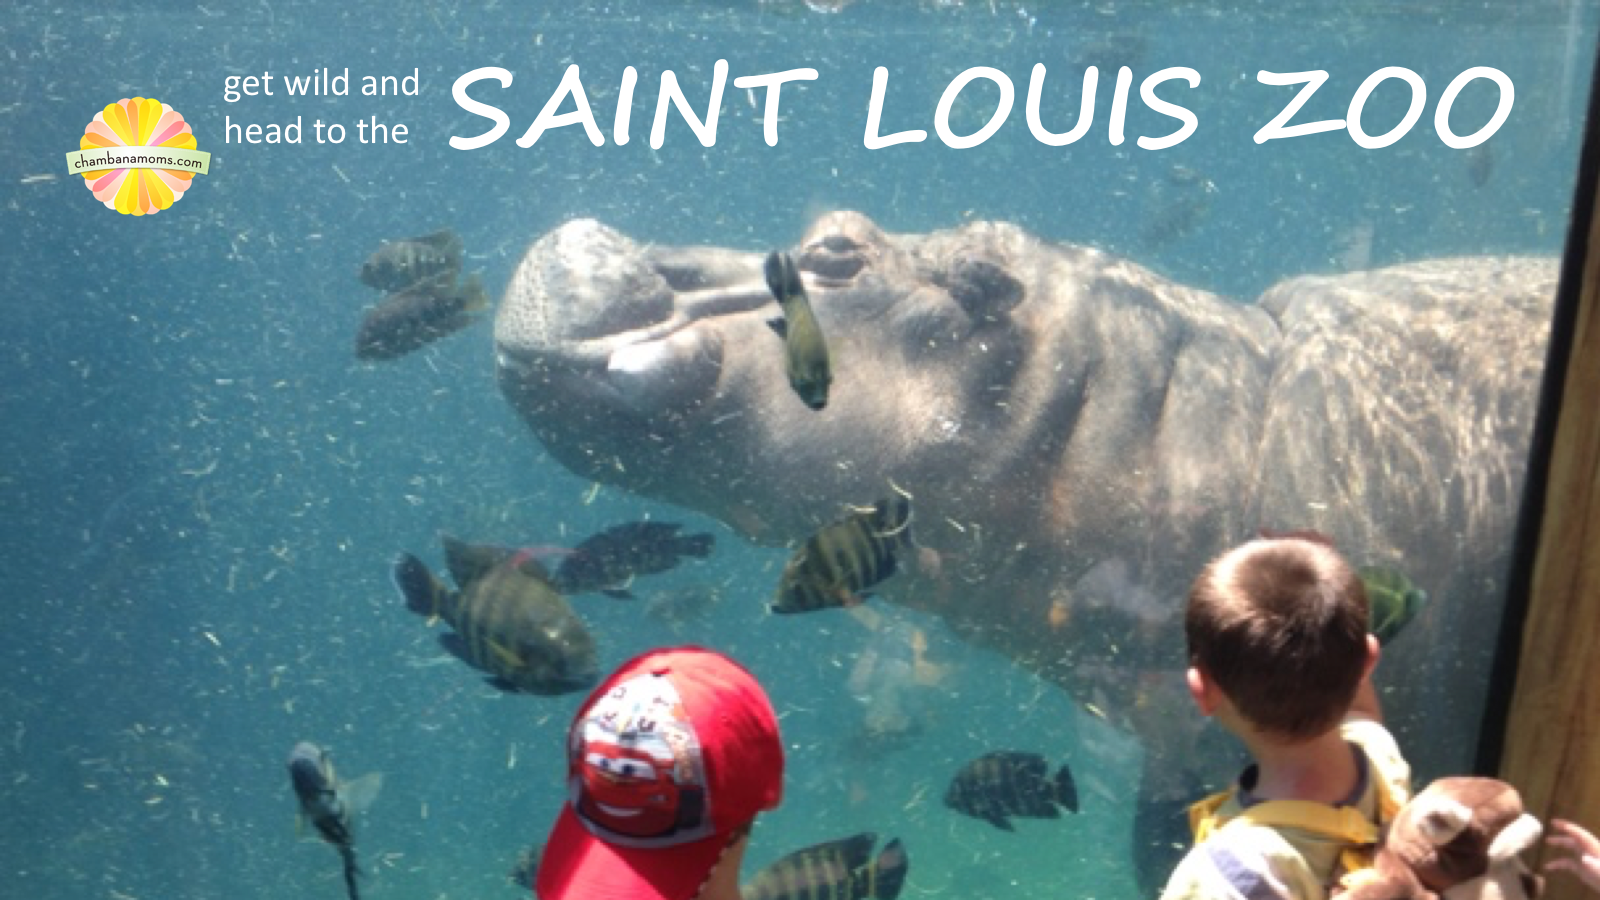 Frugal Family Fun: Get Wild and Head to the Saint Louis Zoo